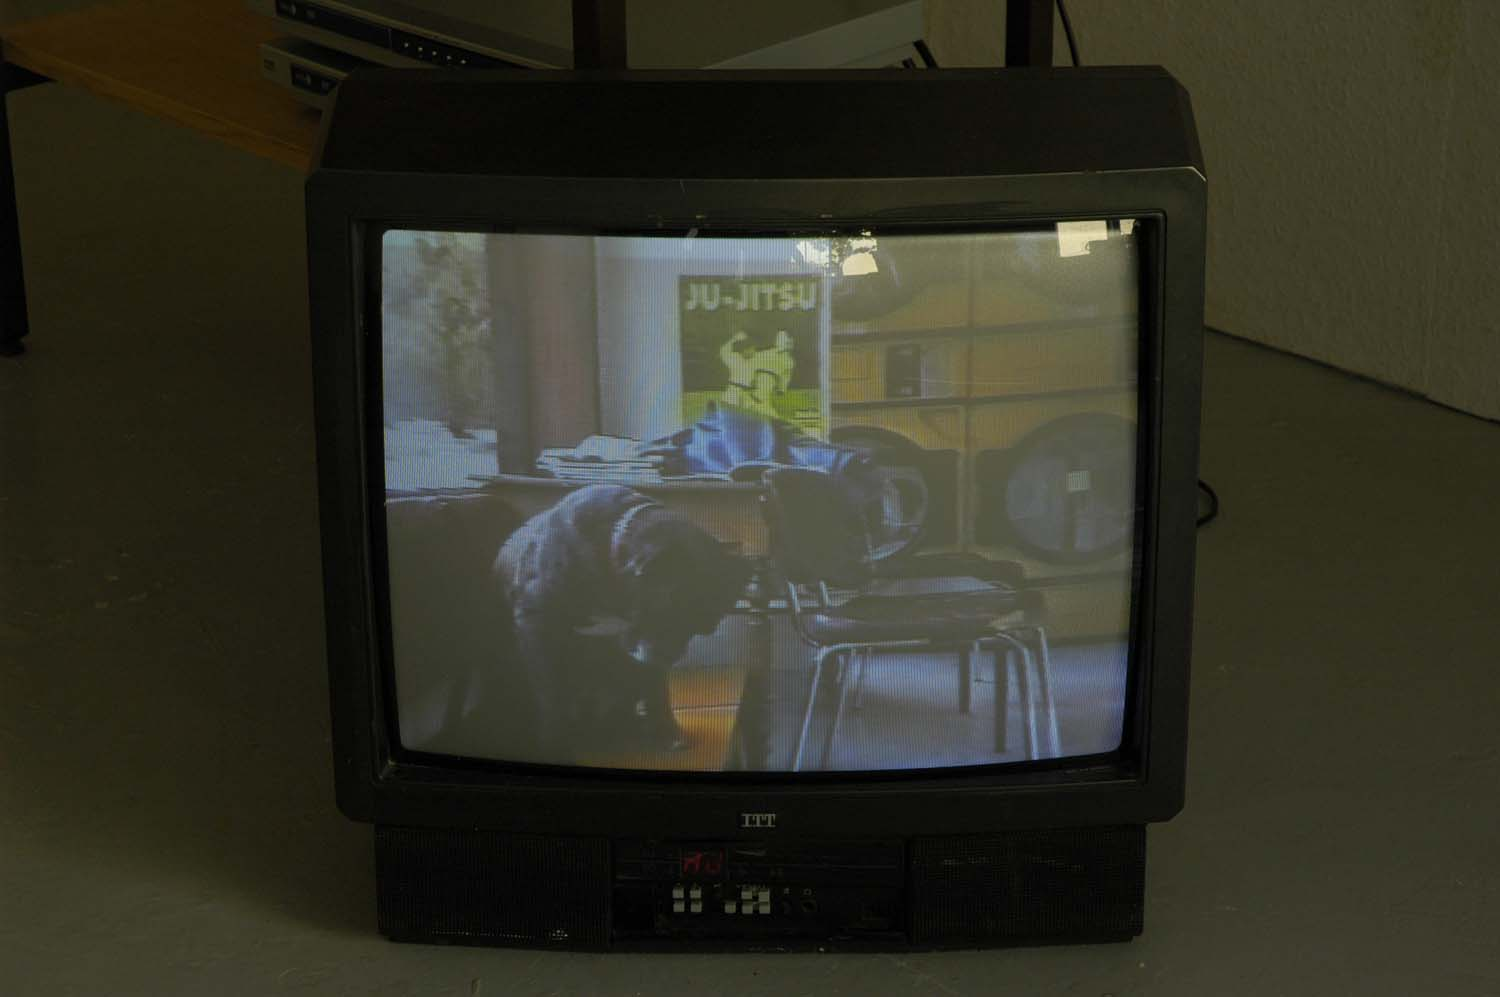 Video image from exhibition